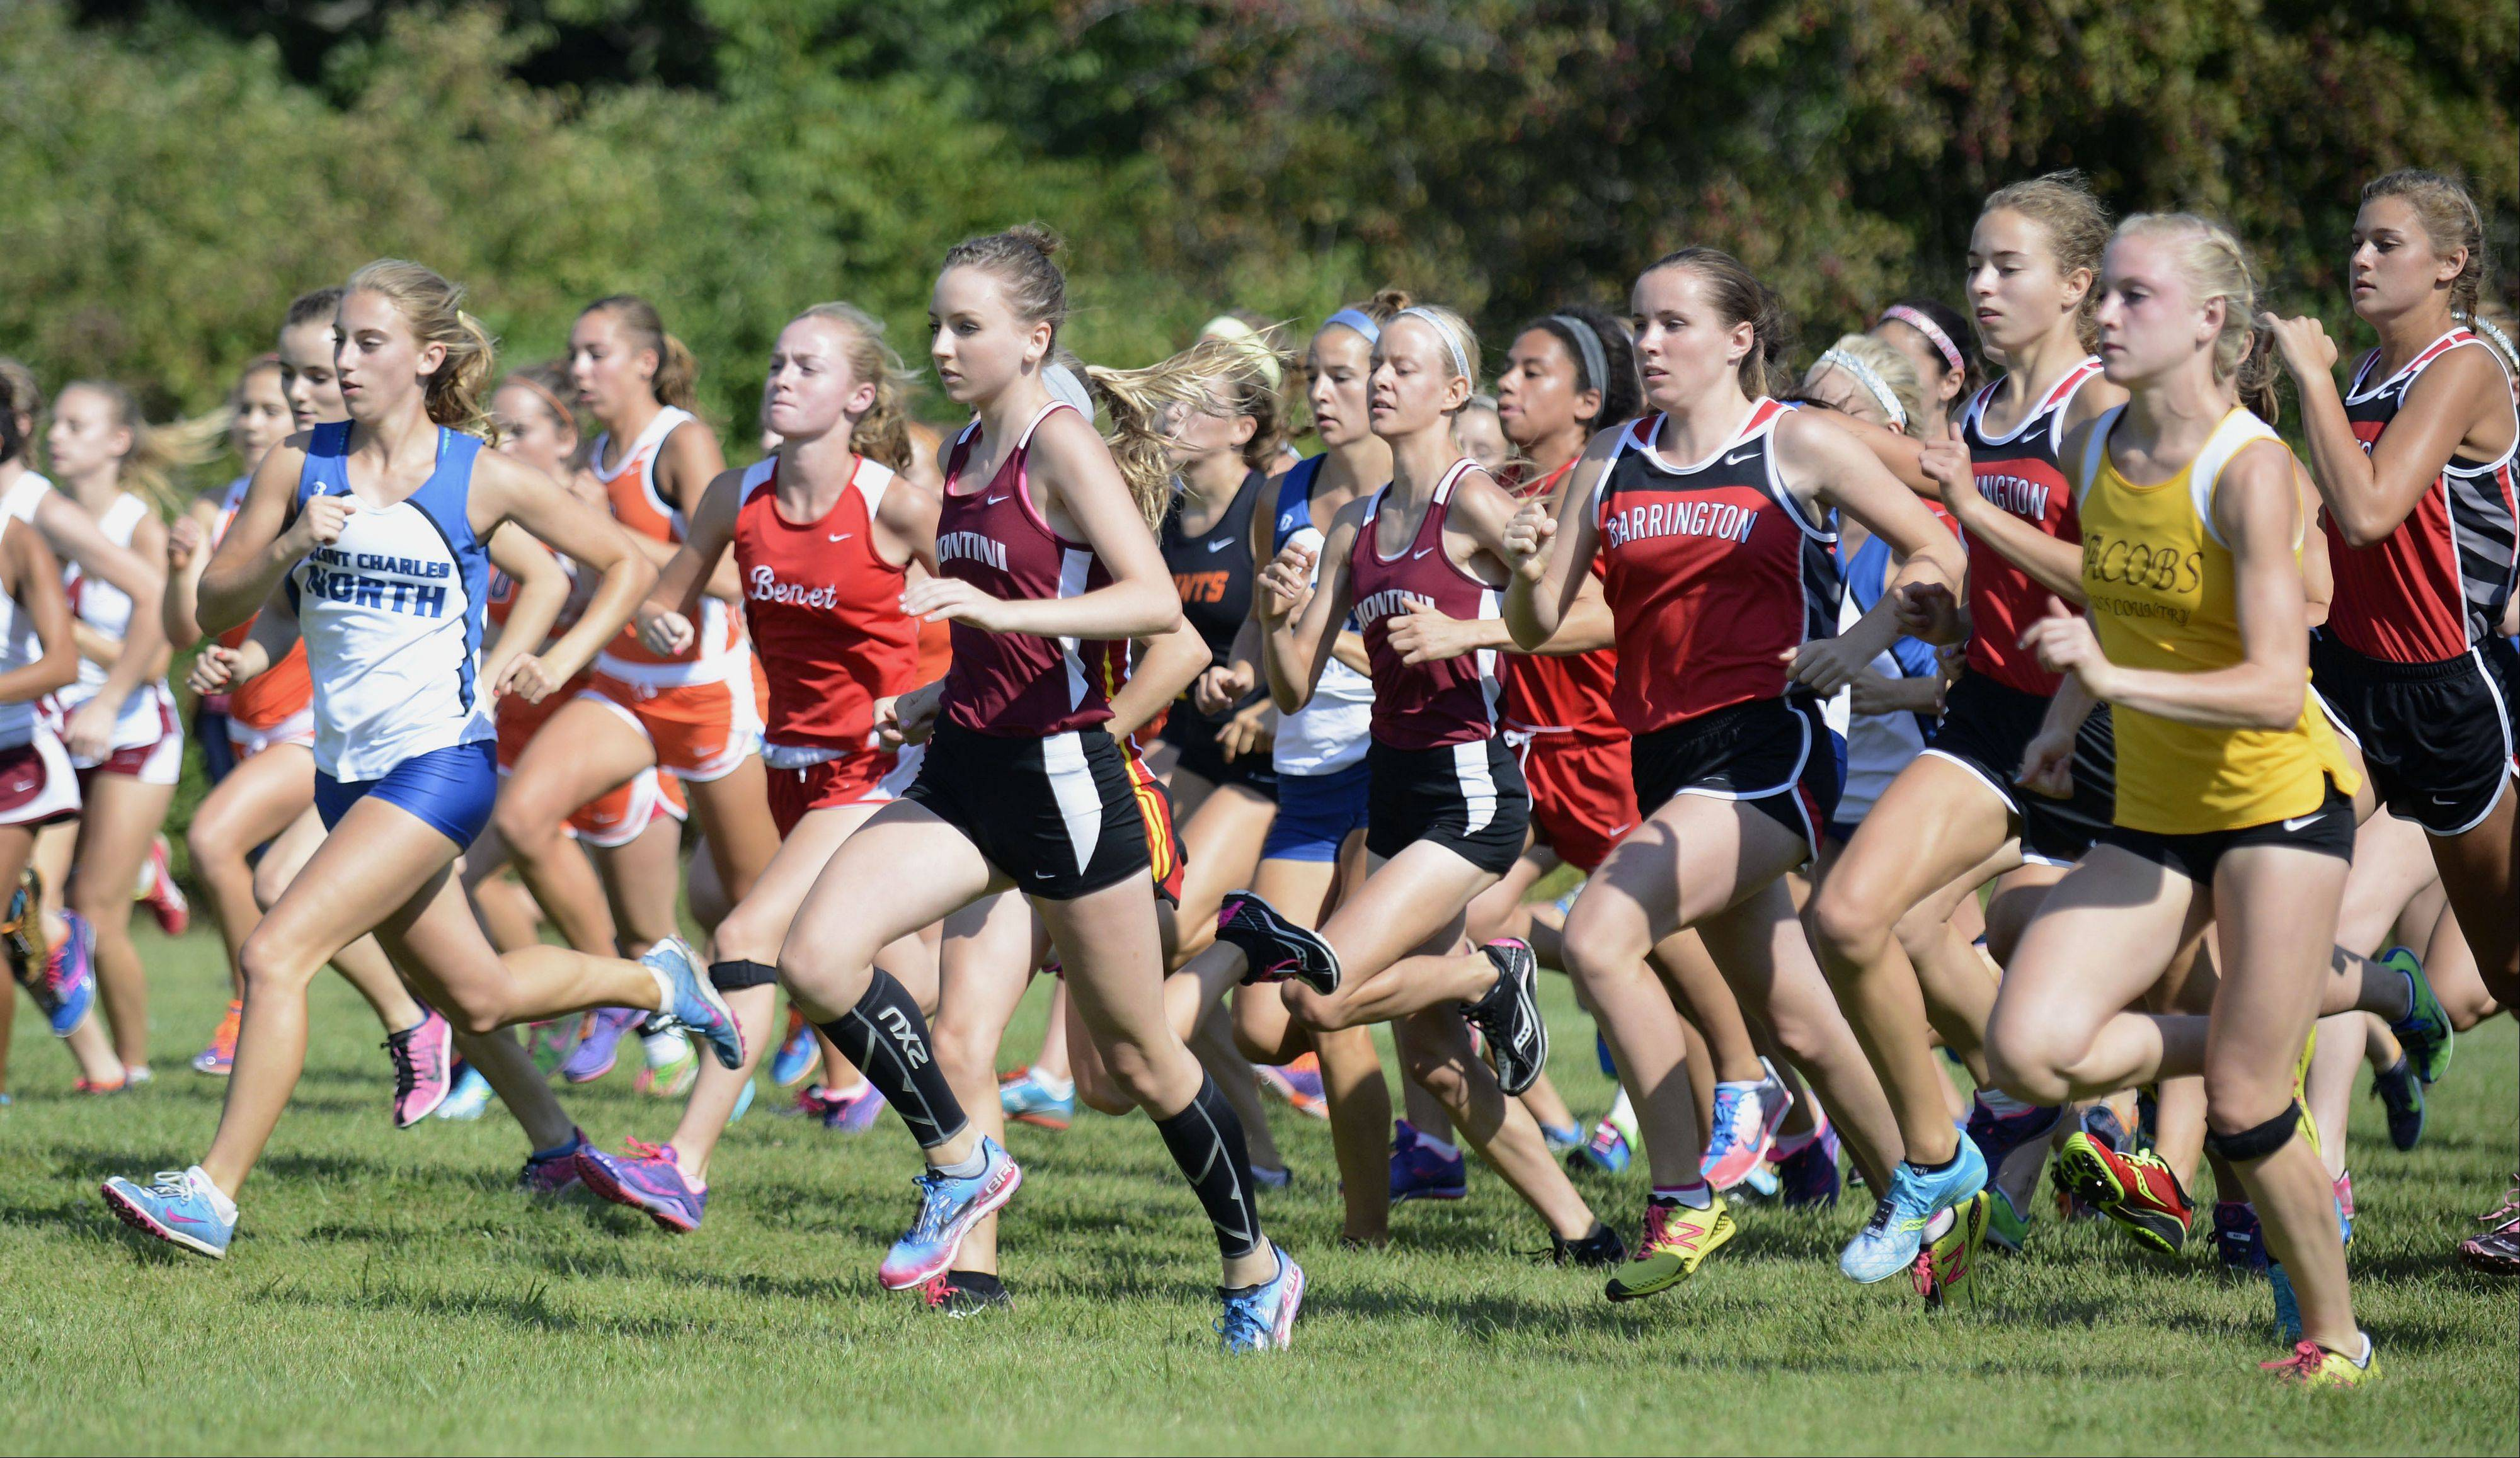 Girls varsity takes off from the starting line in the meet at Leroy Oakes Forest Preserve in St. Charles on Saturday, September 7.